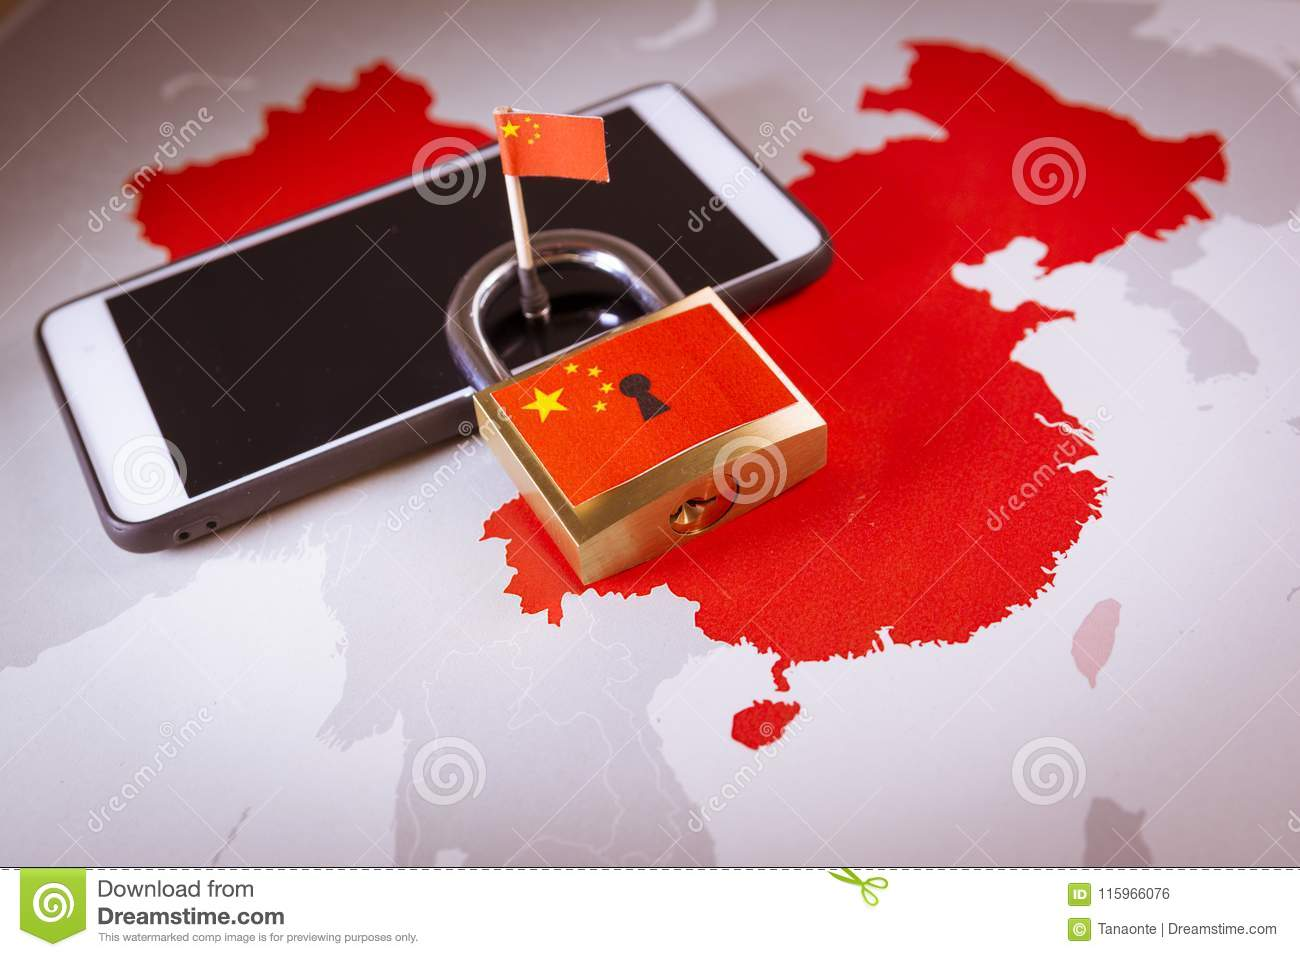 Padlock, China flag on a smartphone and China map. Great Firewall of China concept